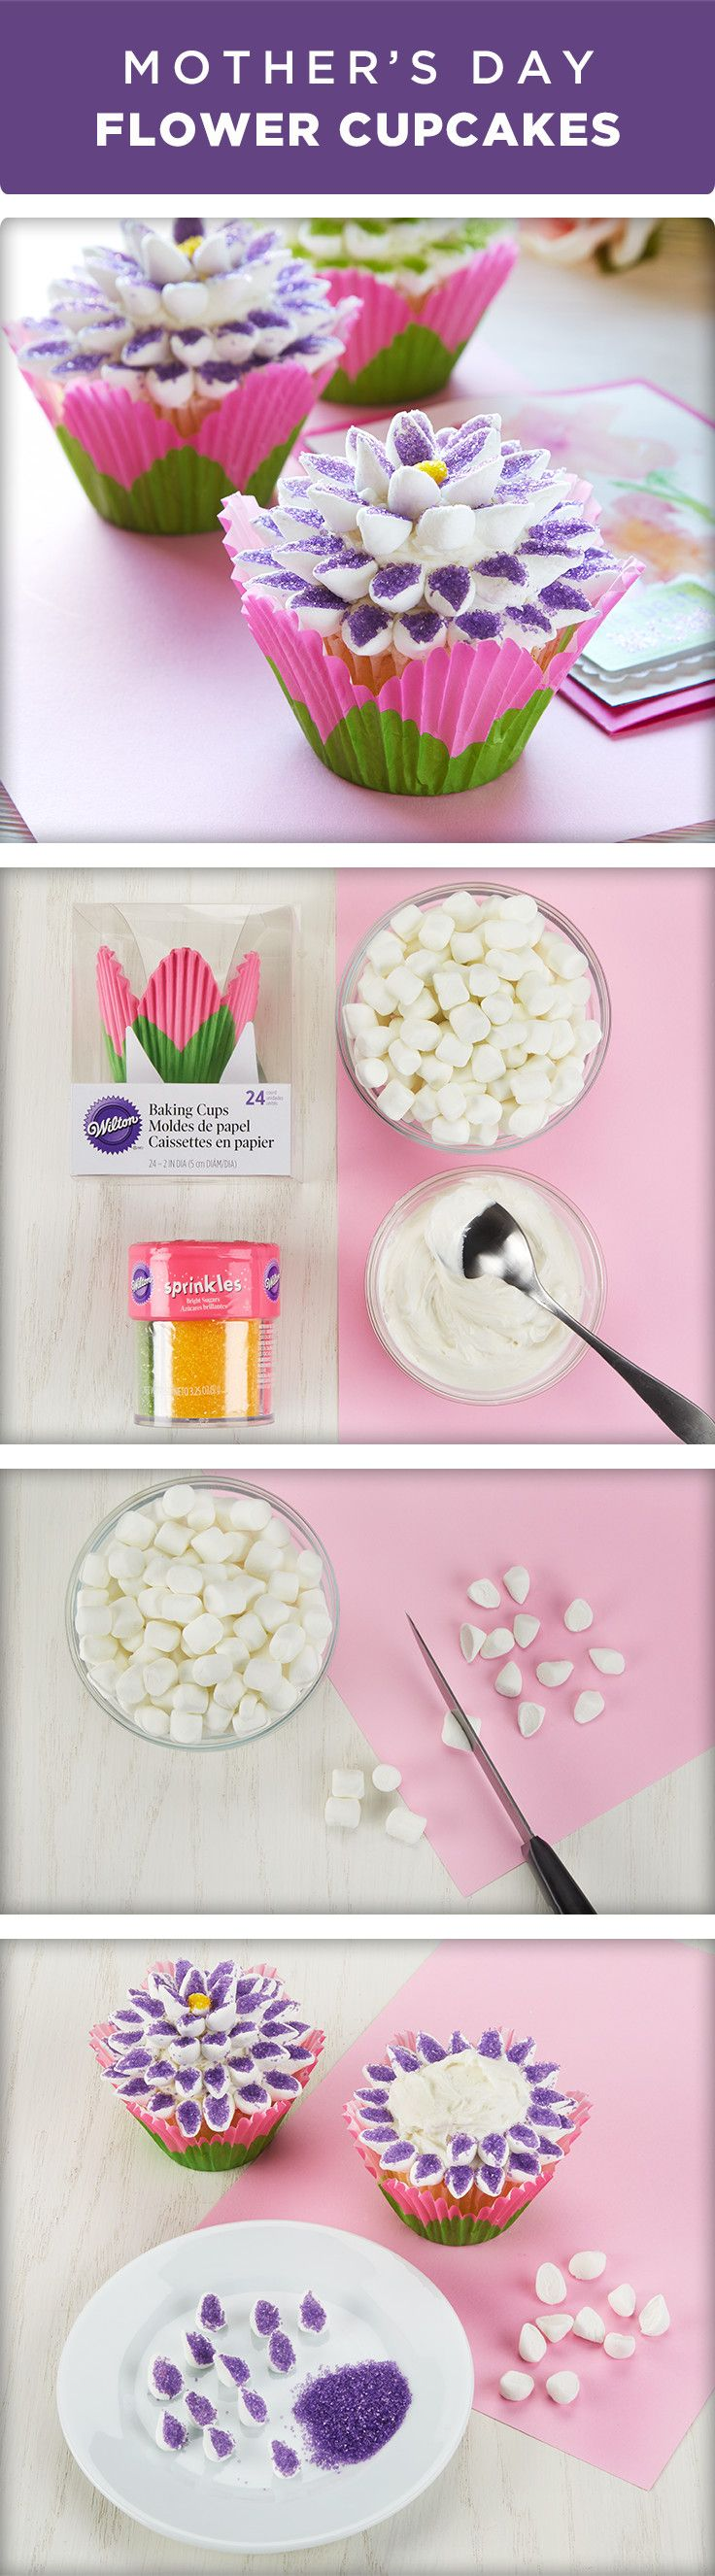 Impress Mom with your baking skills with these Marshmallow Flower Cupcakes. Here's a tip! Buy premade cupcakes and add these colorful sugared flower toppers in just a few steps! To learn how and get the materials you need to make these sweet treats, visit Michaels.com.